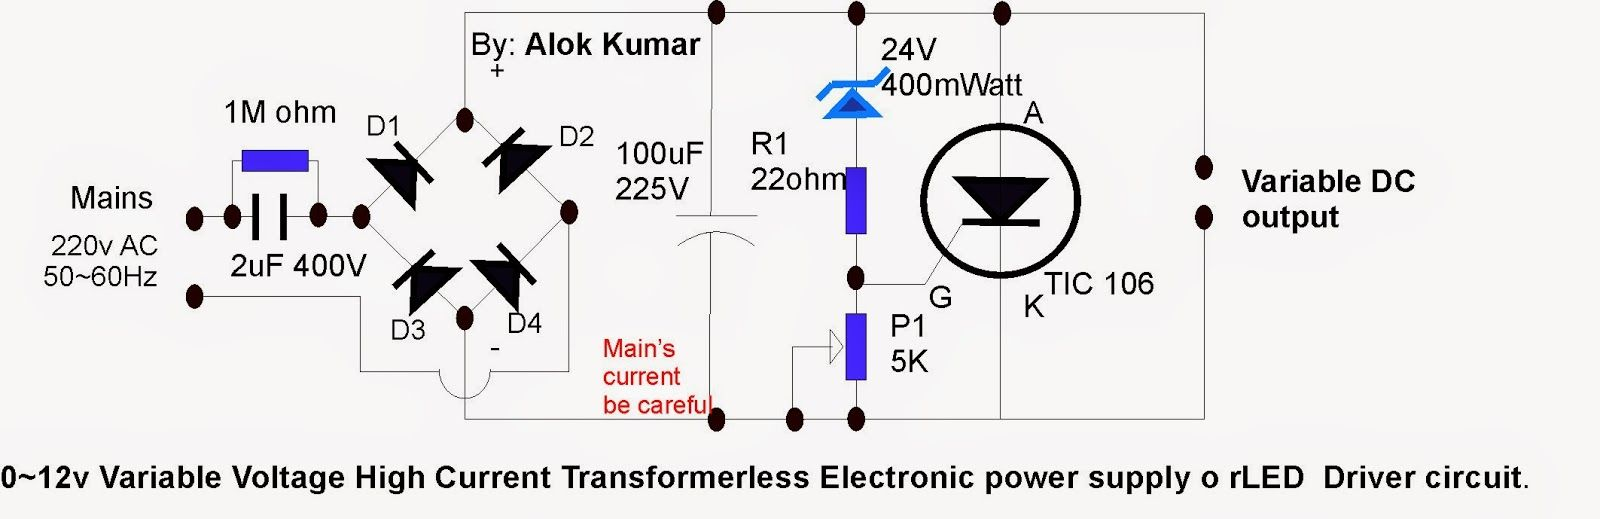 Day Night Automatic Triac Switch Circuit 100th T Figure 1 Darknessactivated Buzzer Diagram A76694120d77b03f13bfcf5525943e68